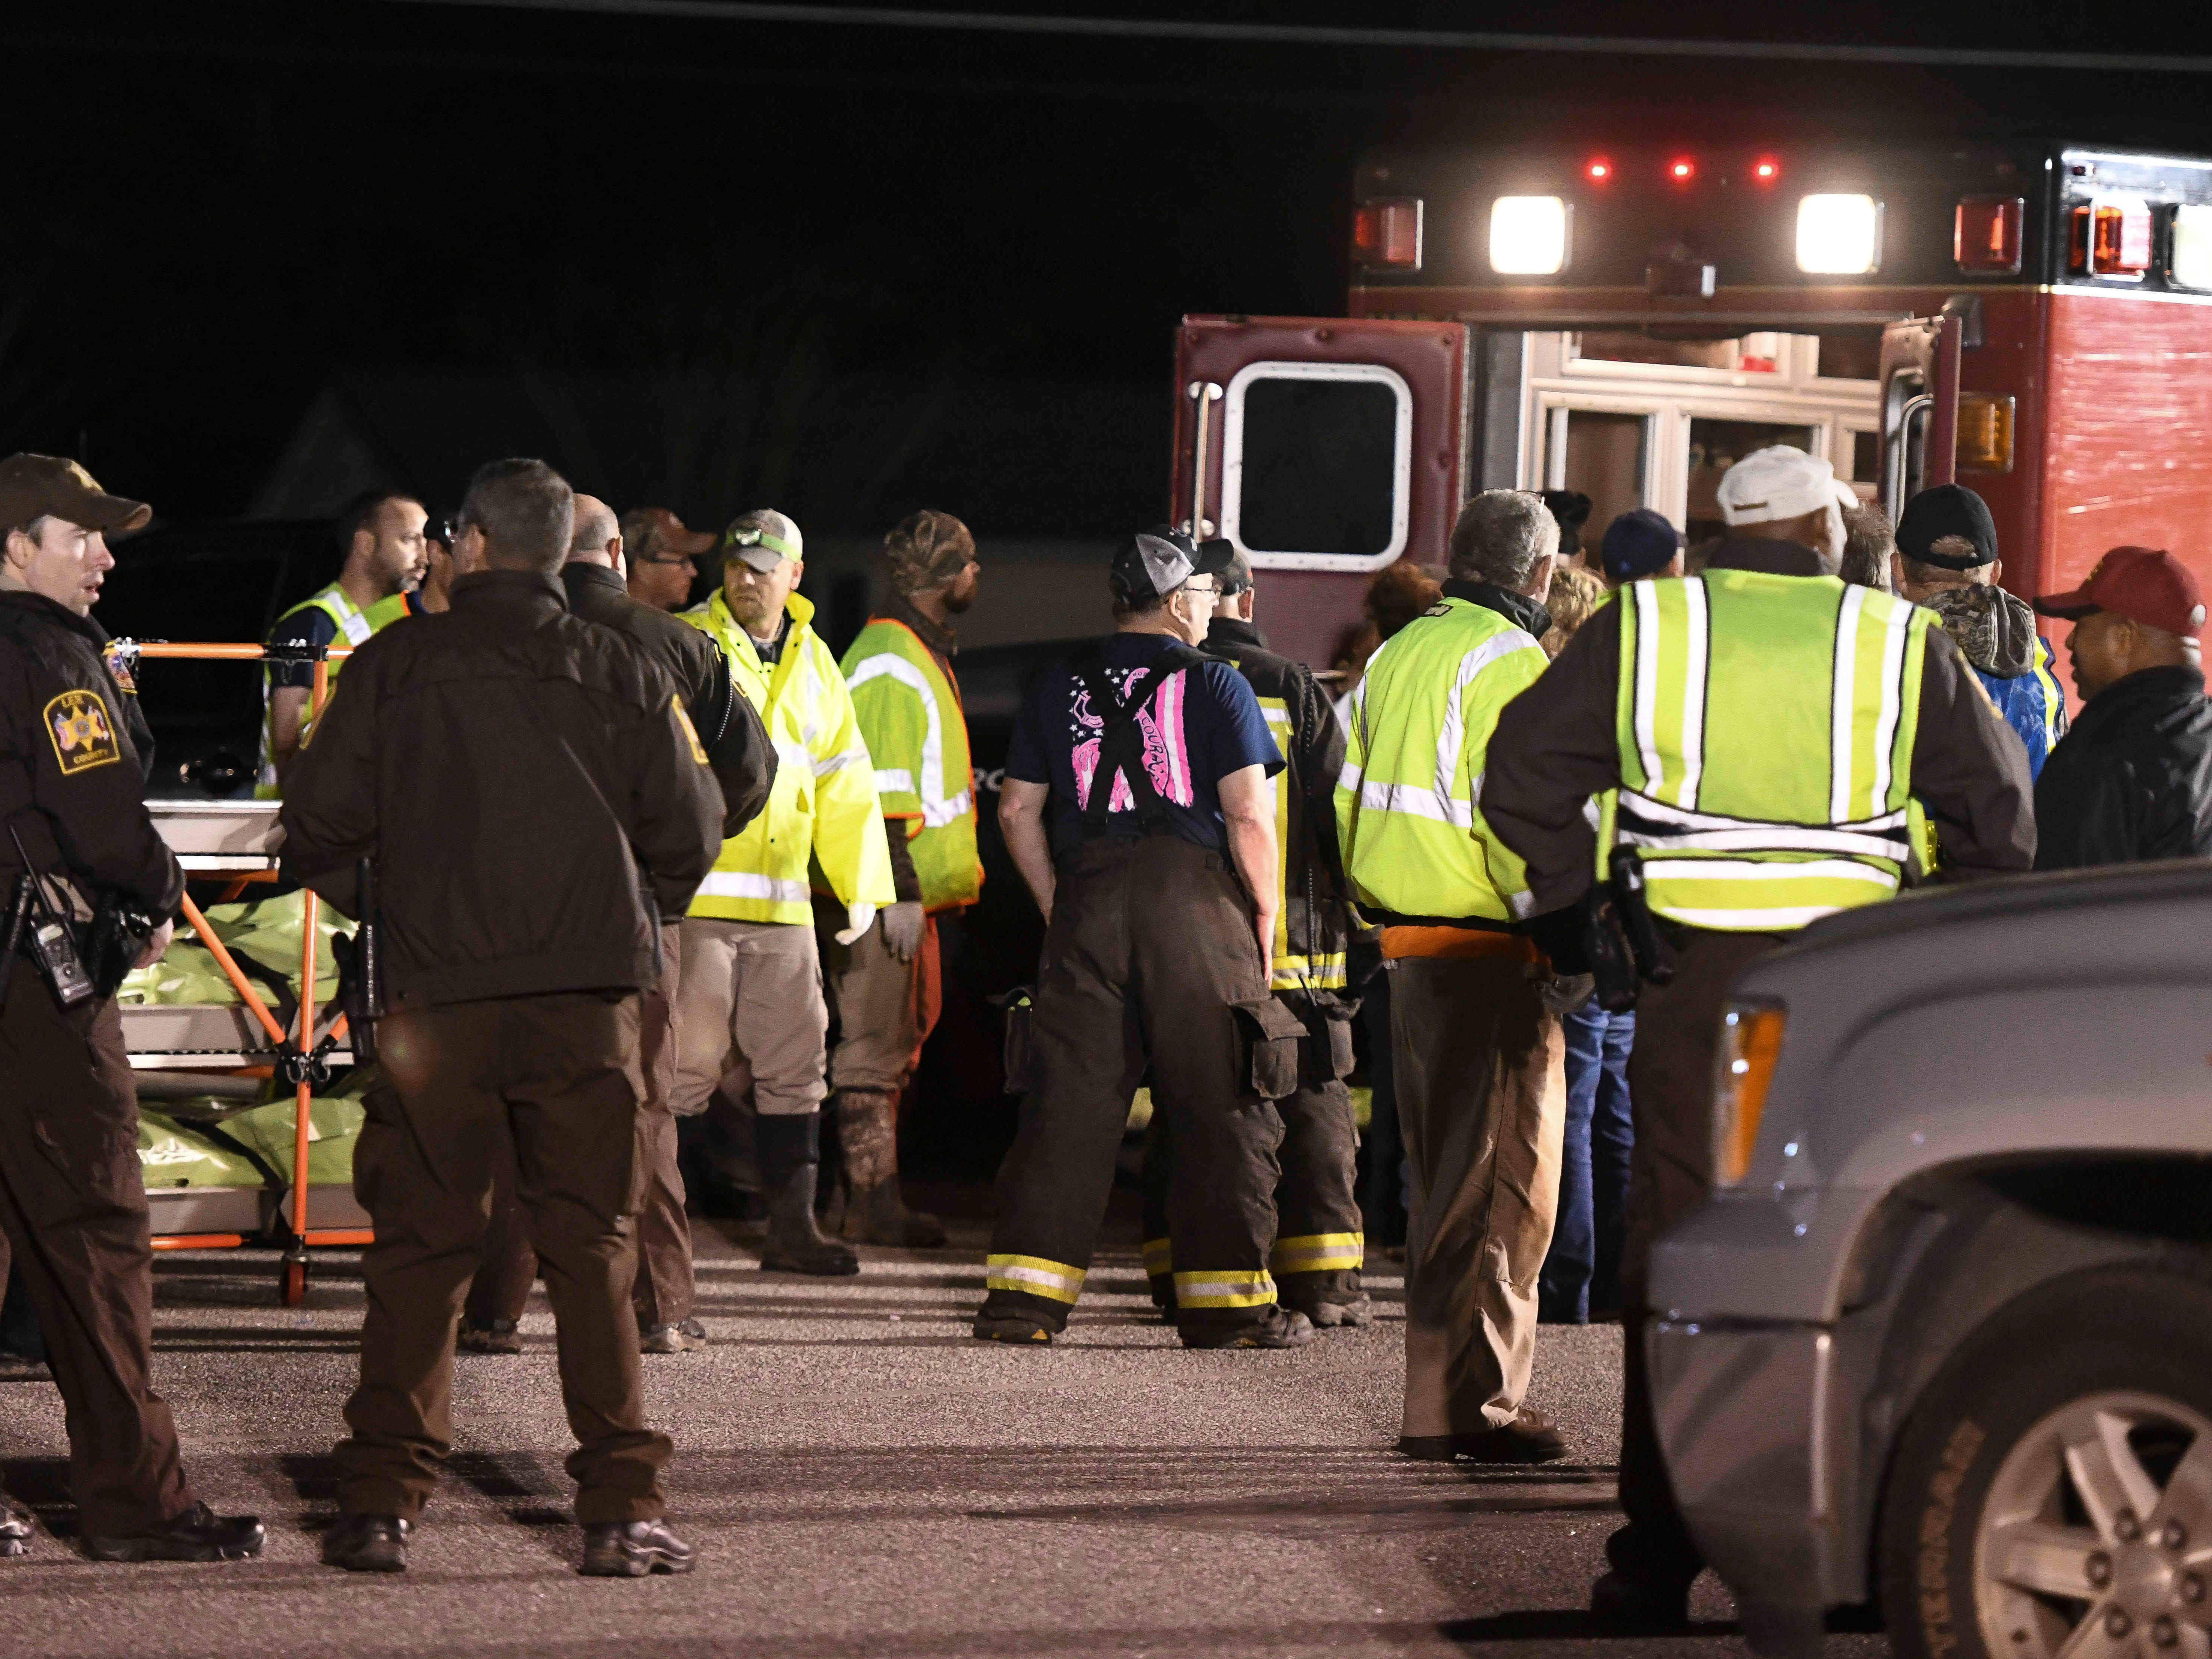 Emergency personnel work the staging area at Sanford Middle School in Beauregard, Ala., Sunday, March 3, 2019, after tornados ravaged the area, causing multiple fatalities. (AP Photo/Julie Bennett) ORG XMIT: ALJB151